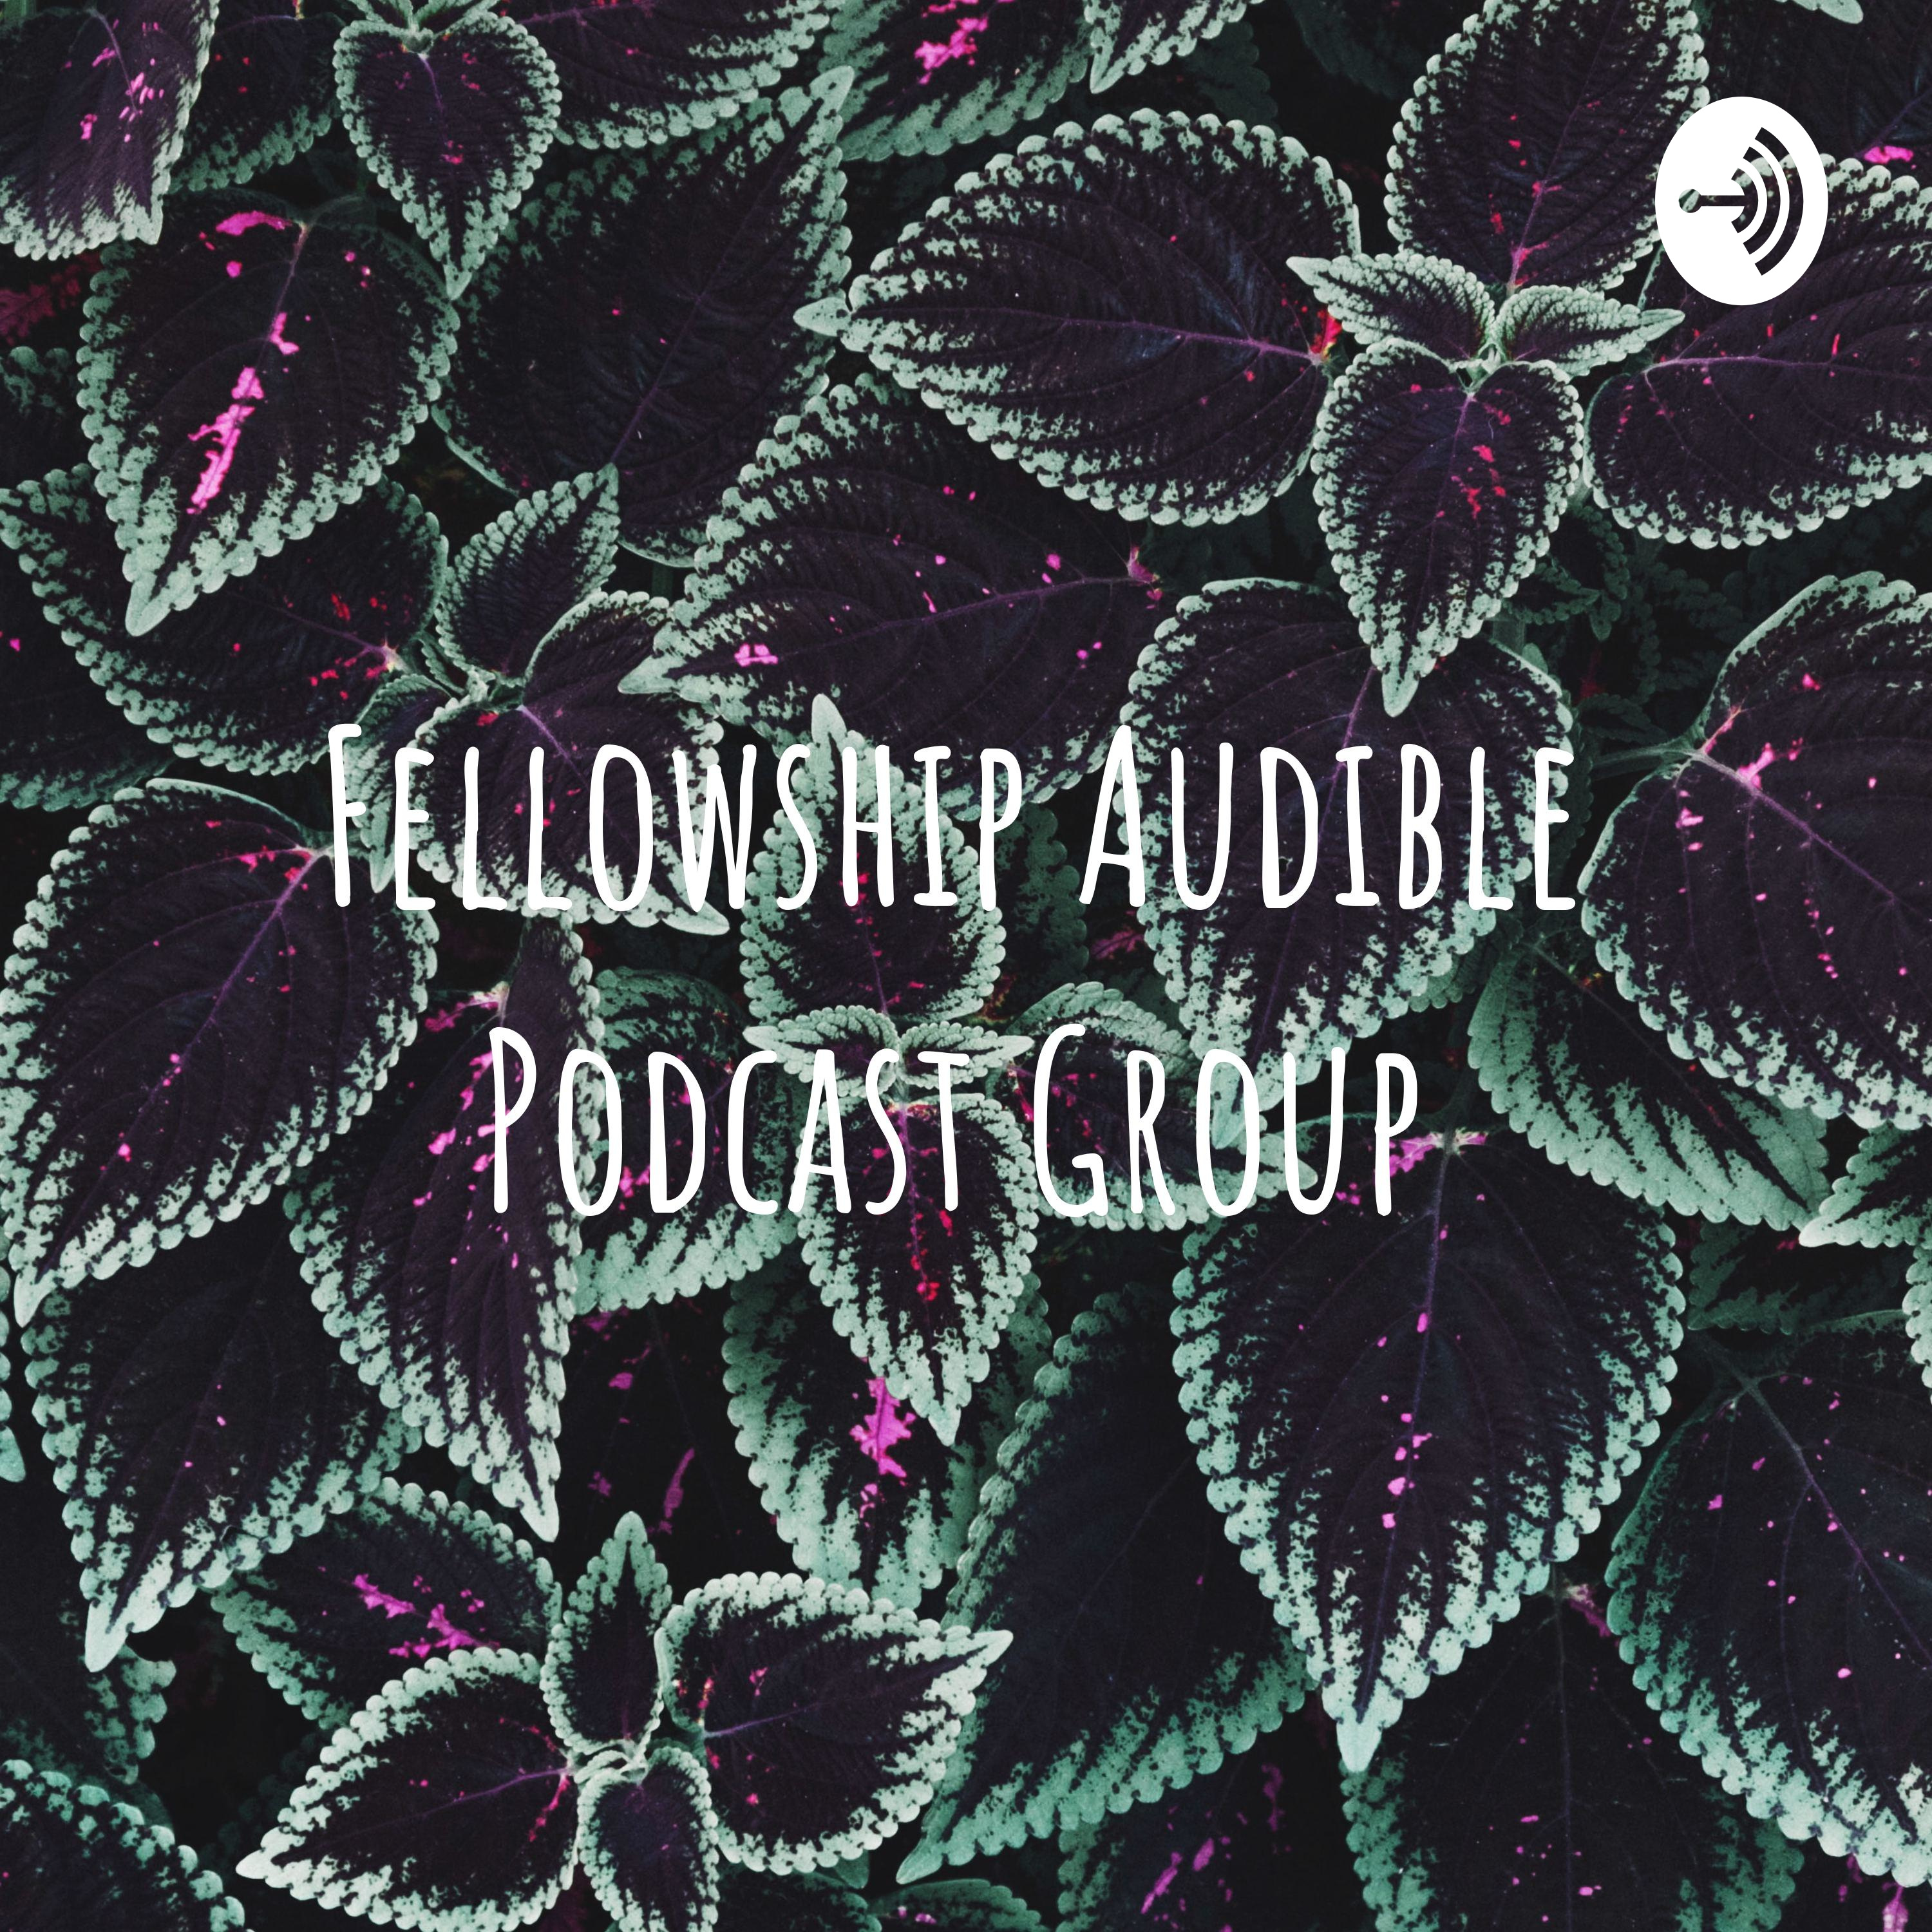 Fellowship Audible Podcast Group